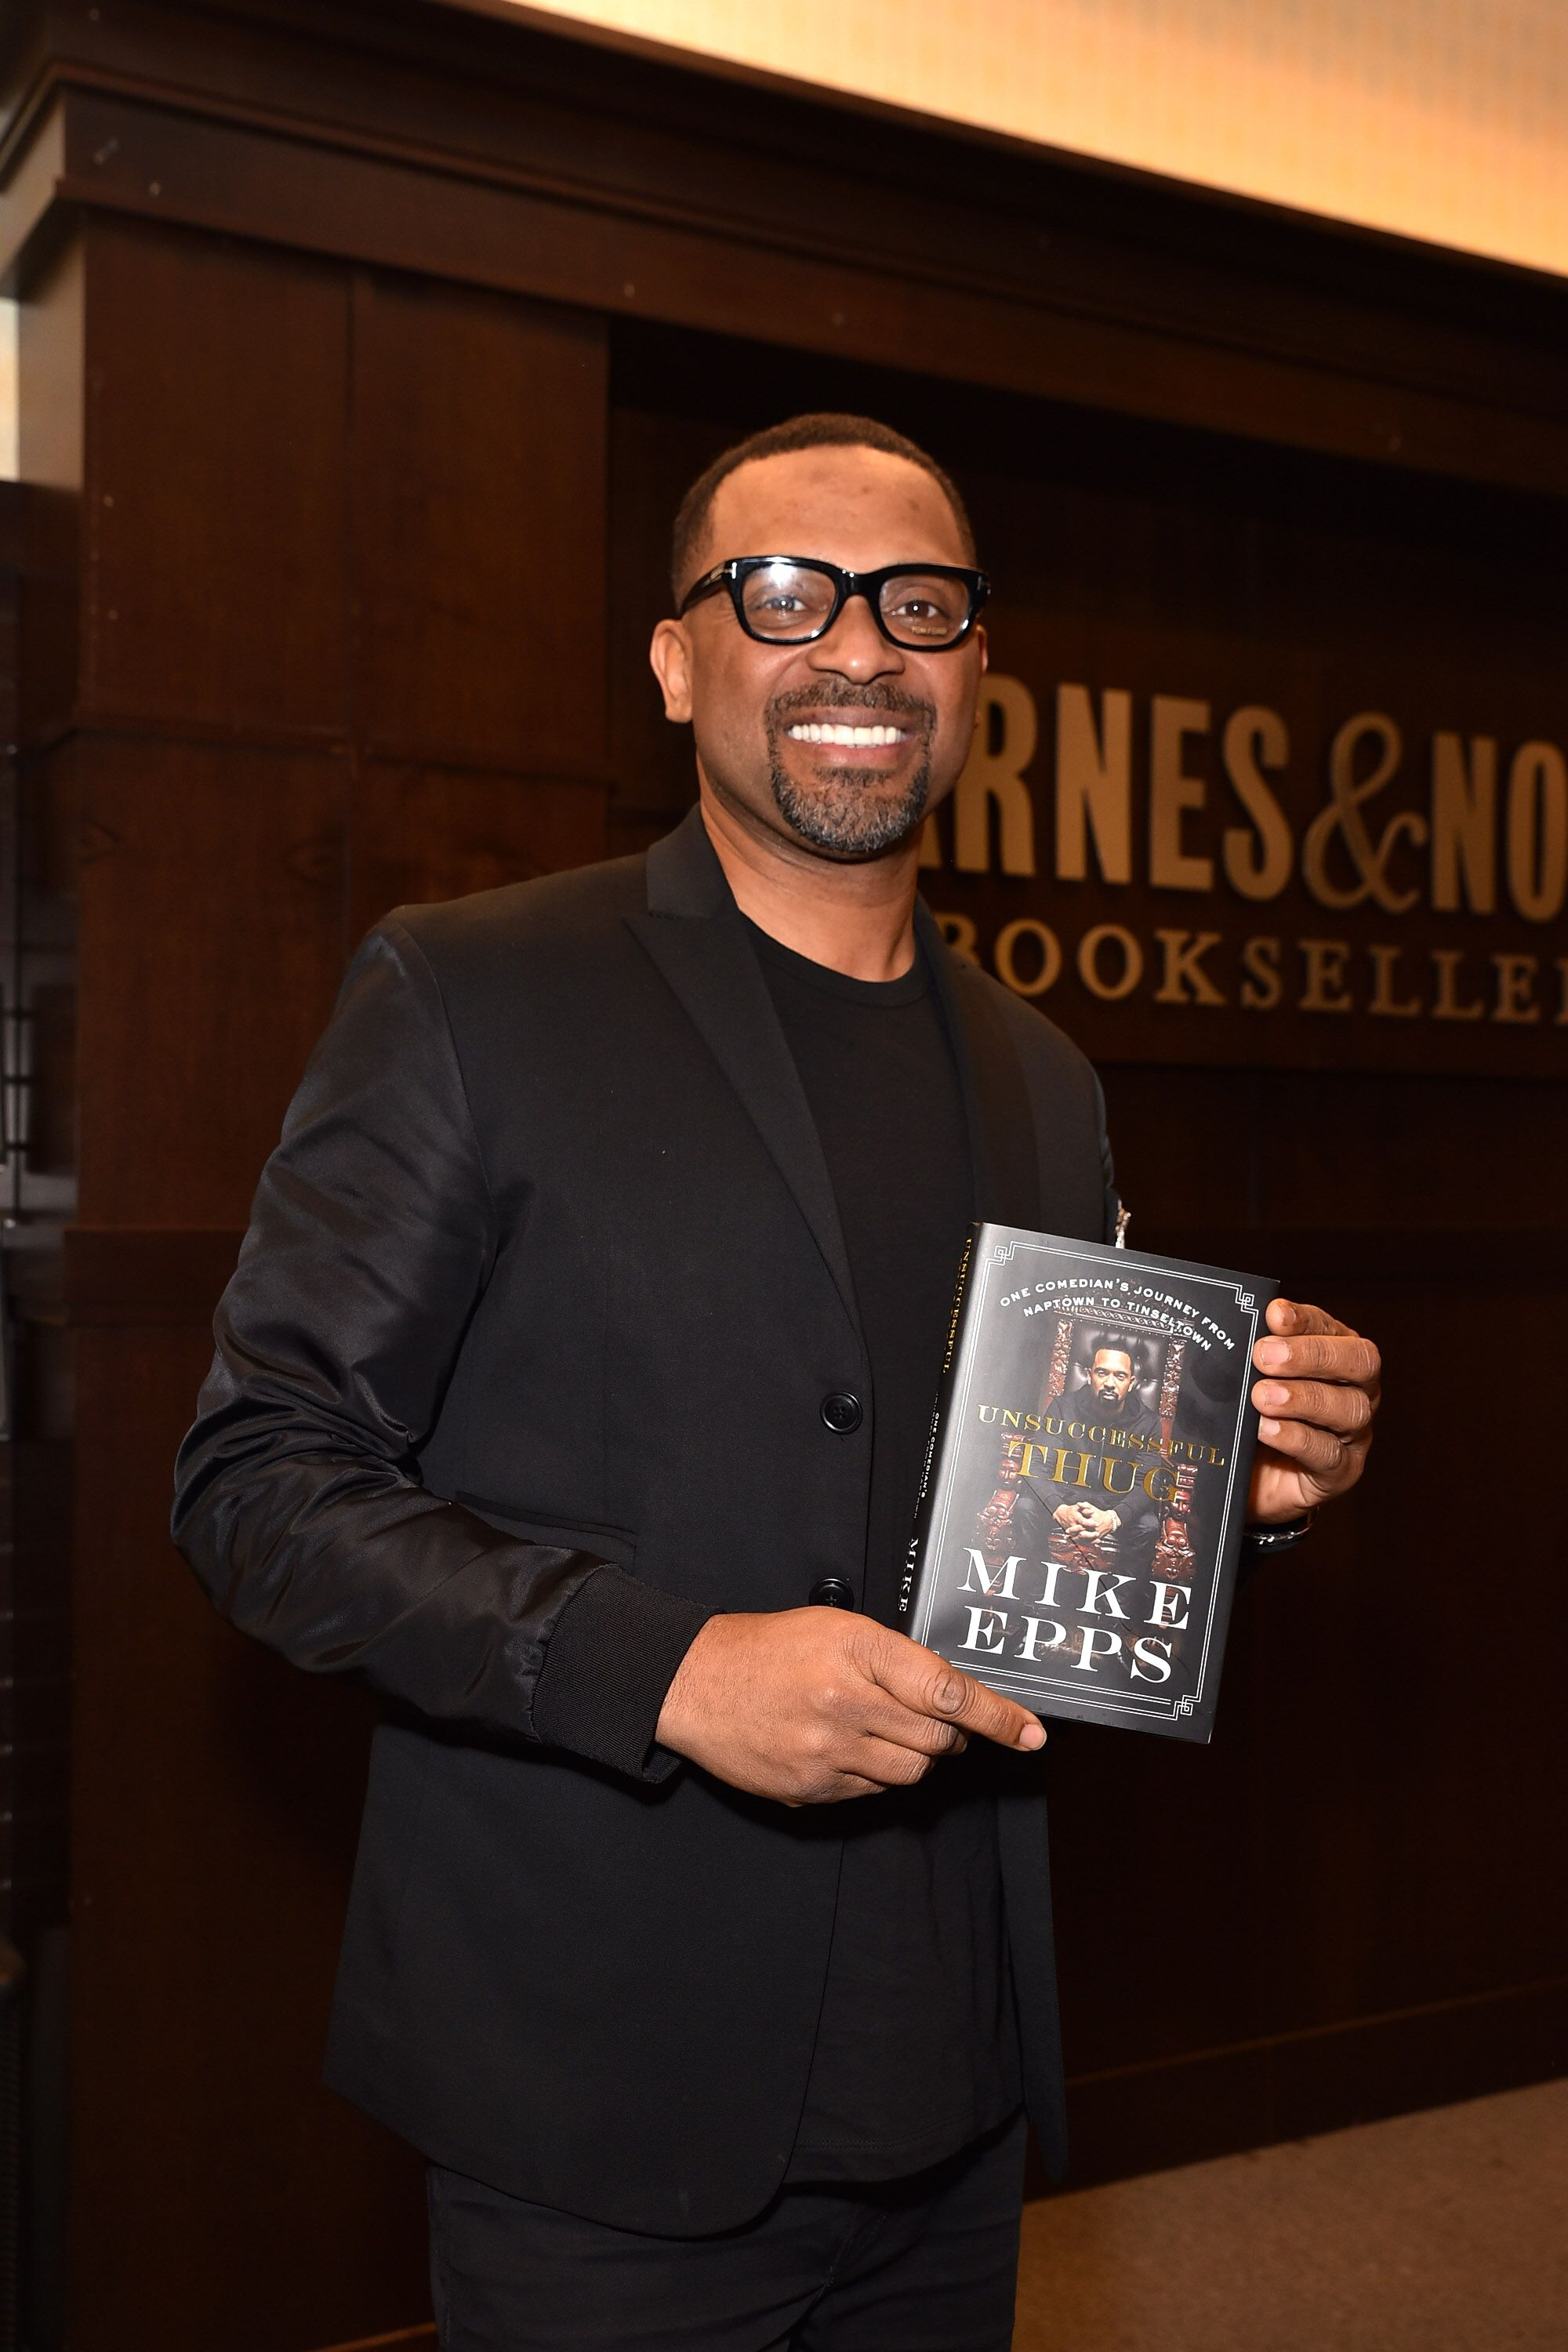 Mike Epps during his book launch at Barnes and Noble | Source: Getty Images/GlobalImagesUkraine